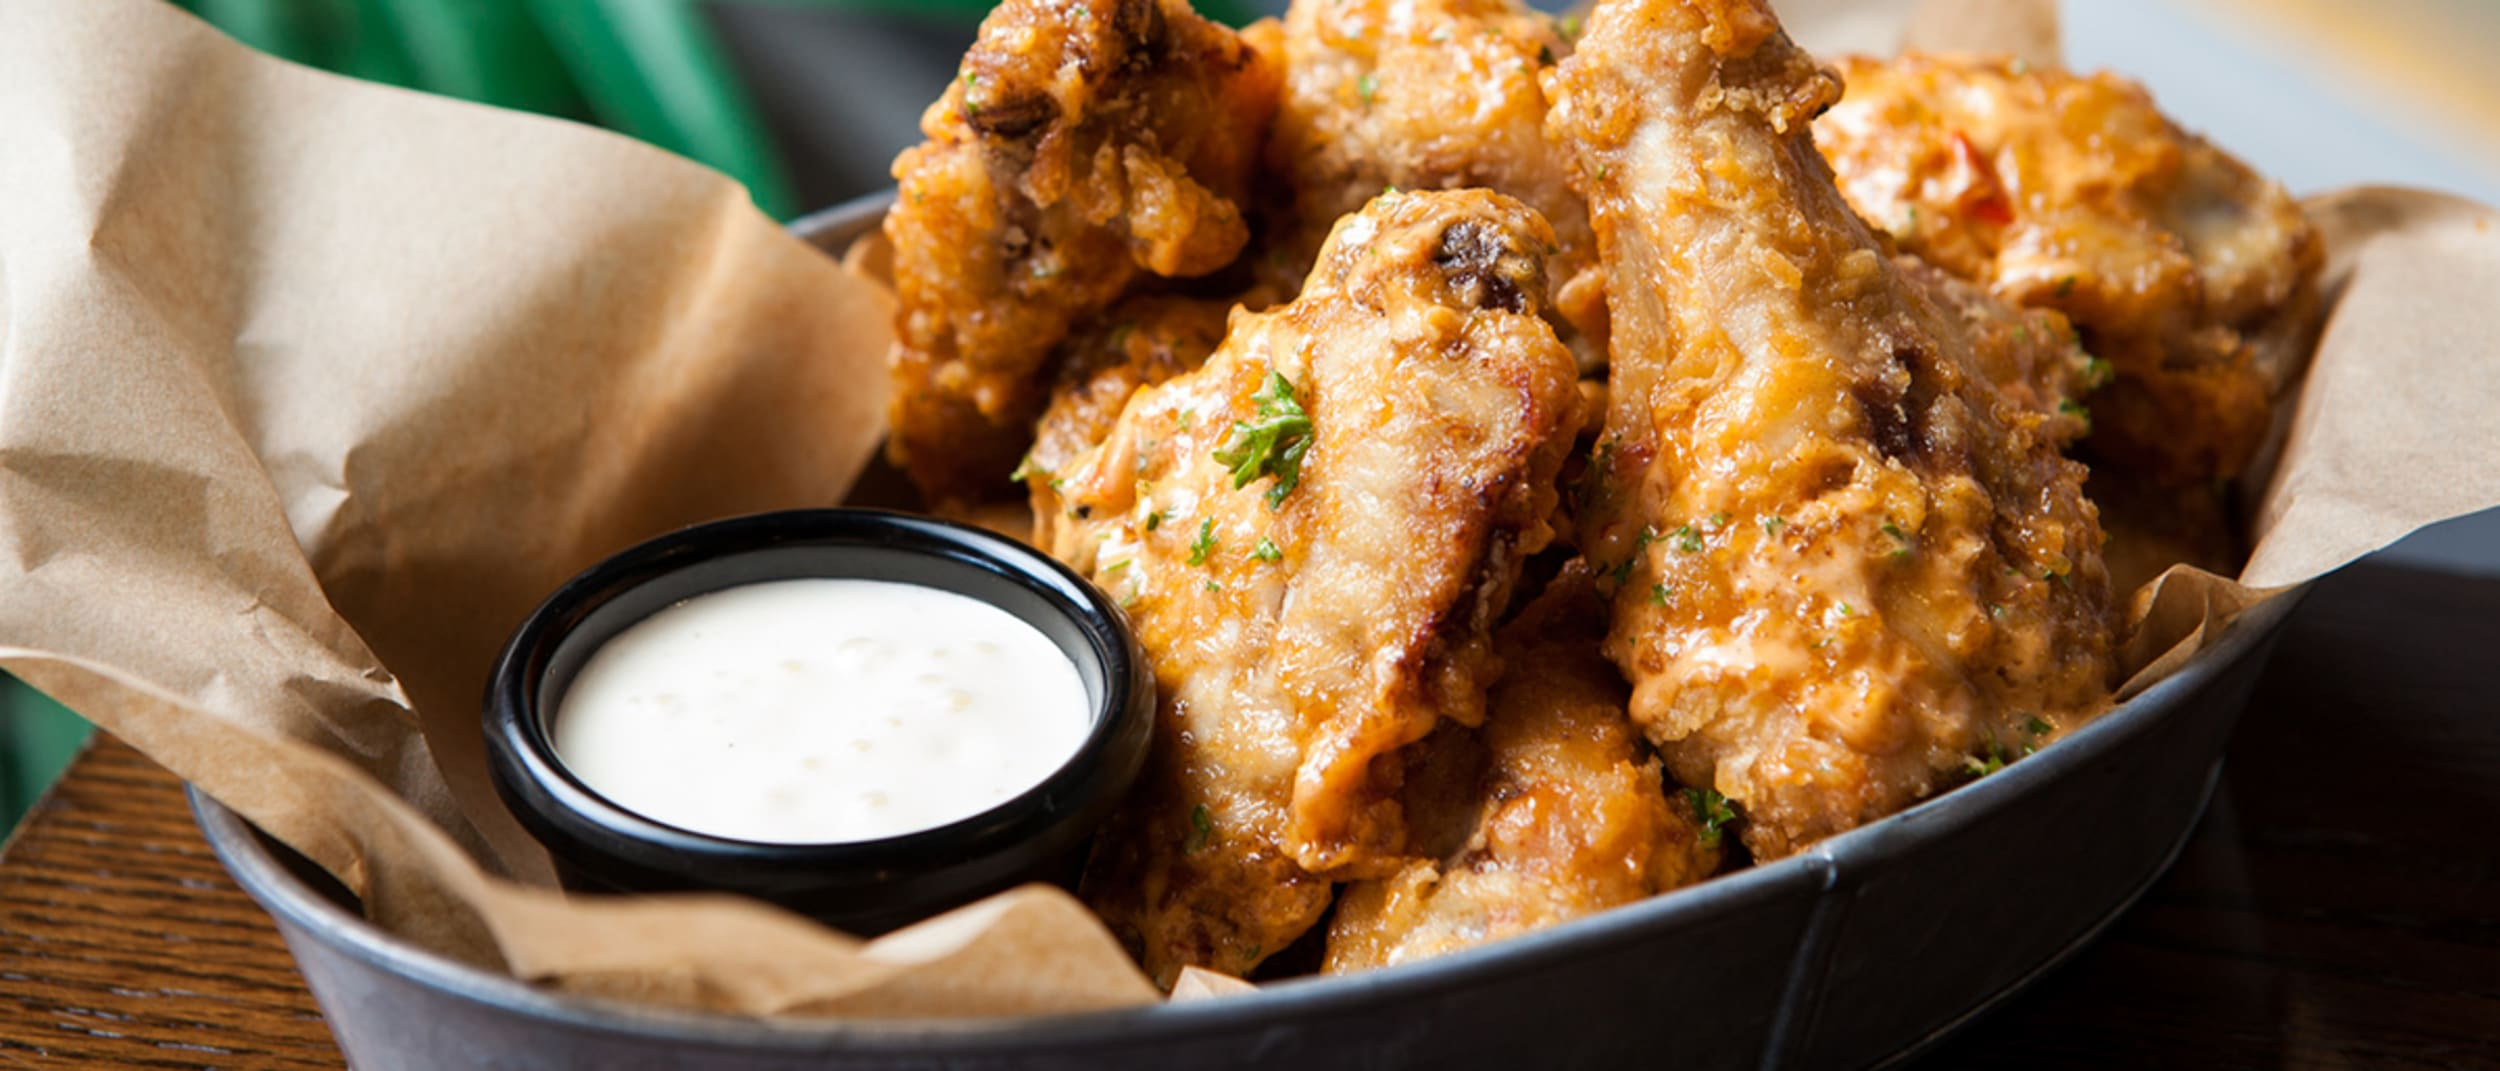 Beach House Bar & Grill: Thursday wing night